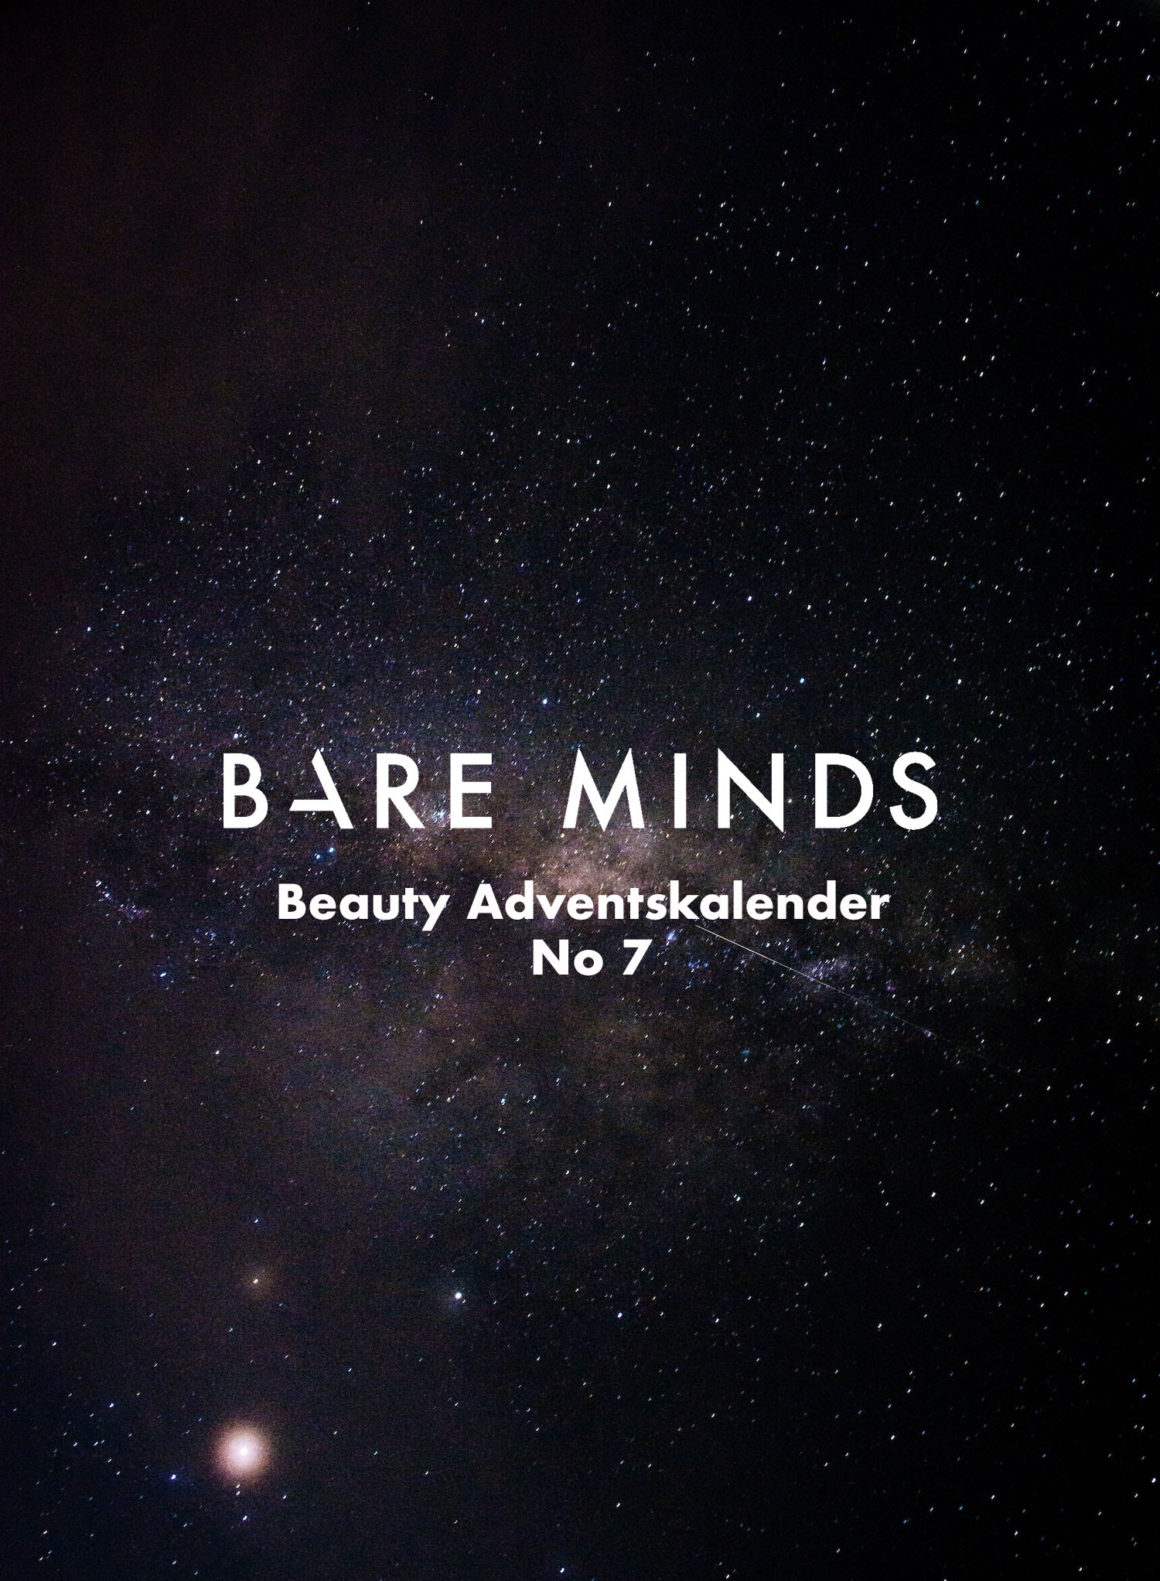 Bare Minds Beauty Adventskalender raphael-nogueira-584531-unsplash Kopie